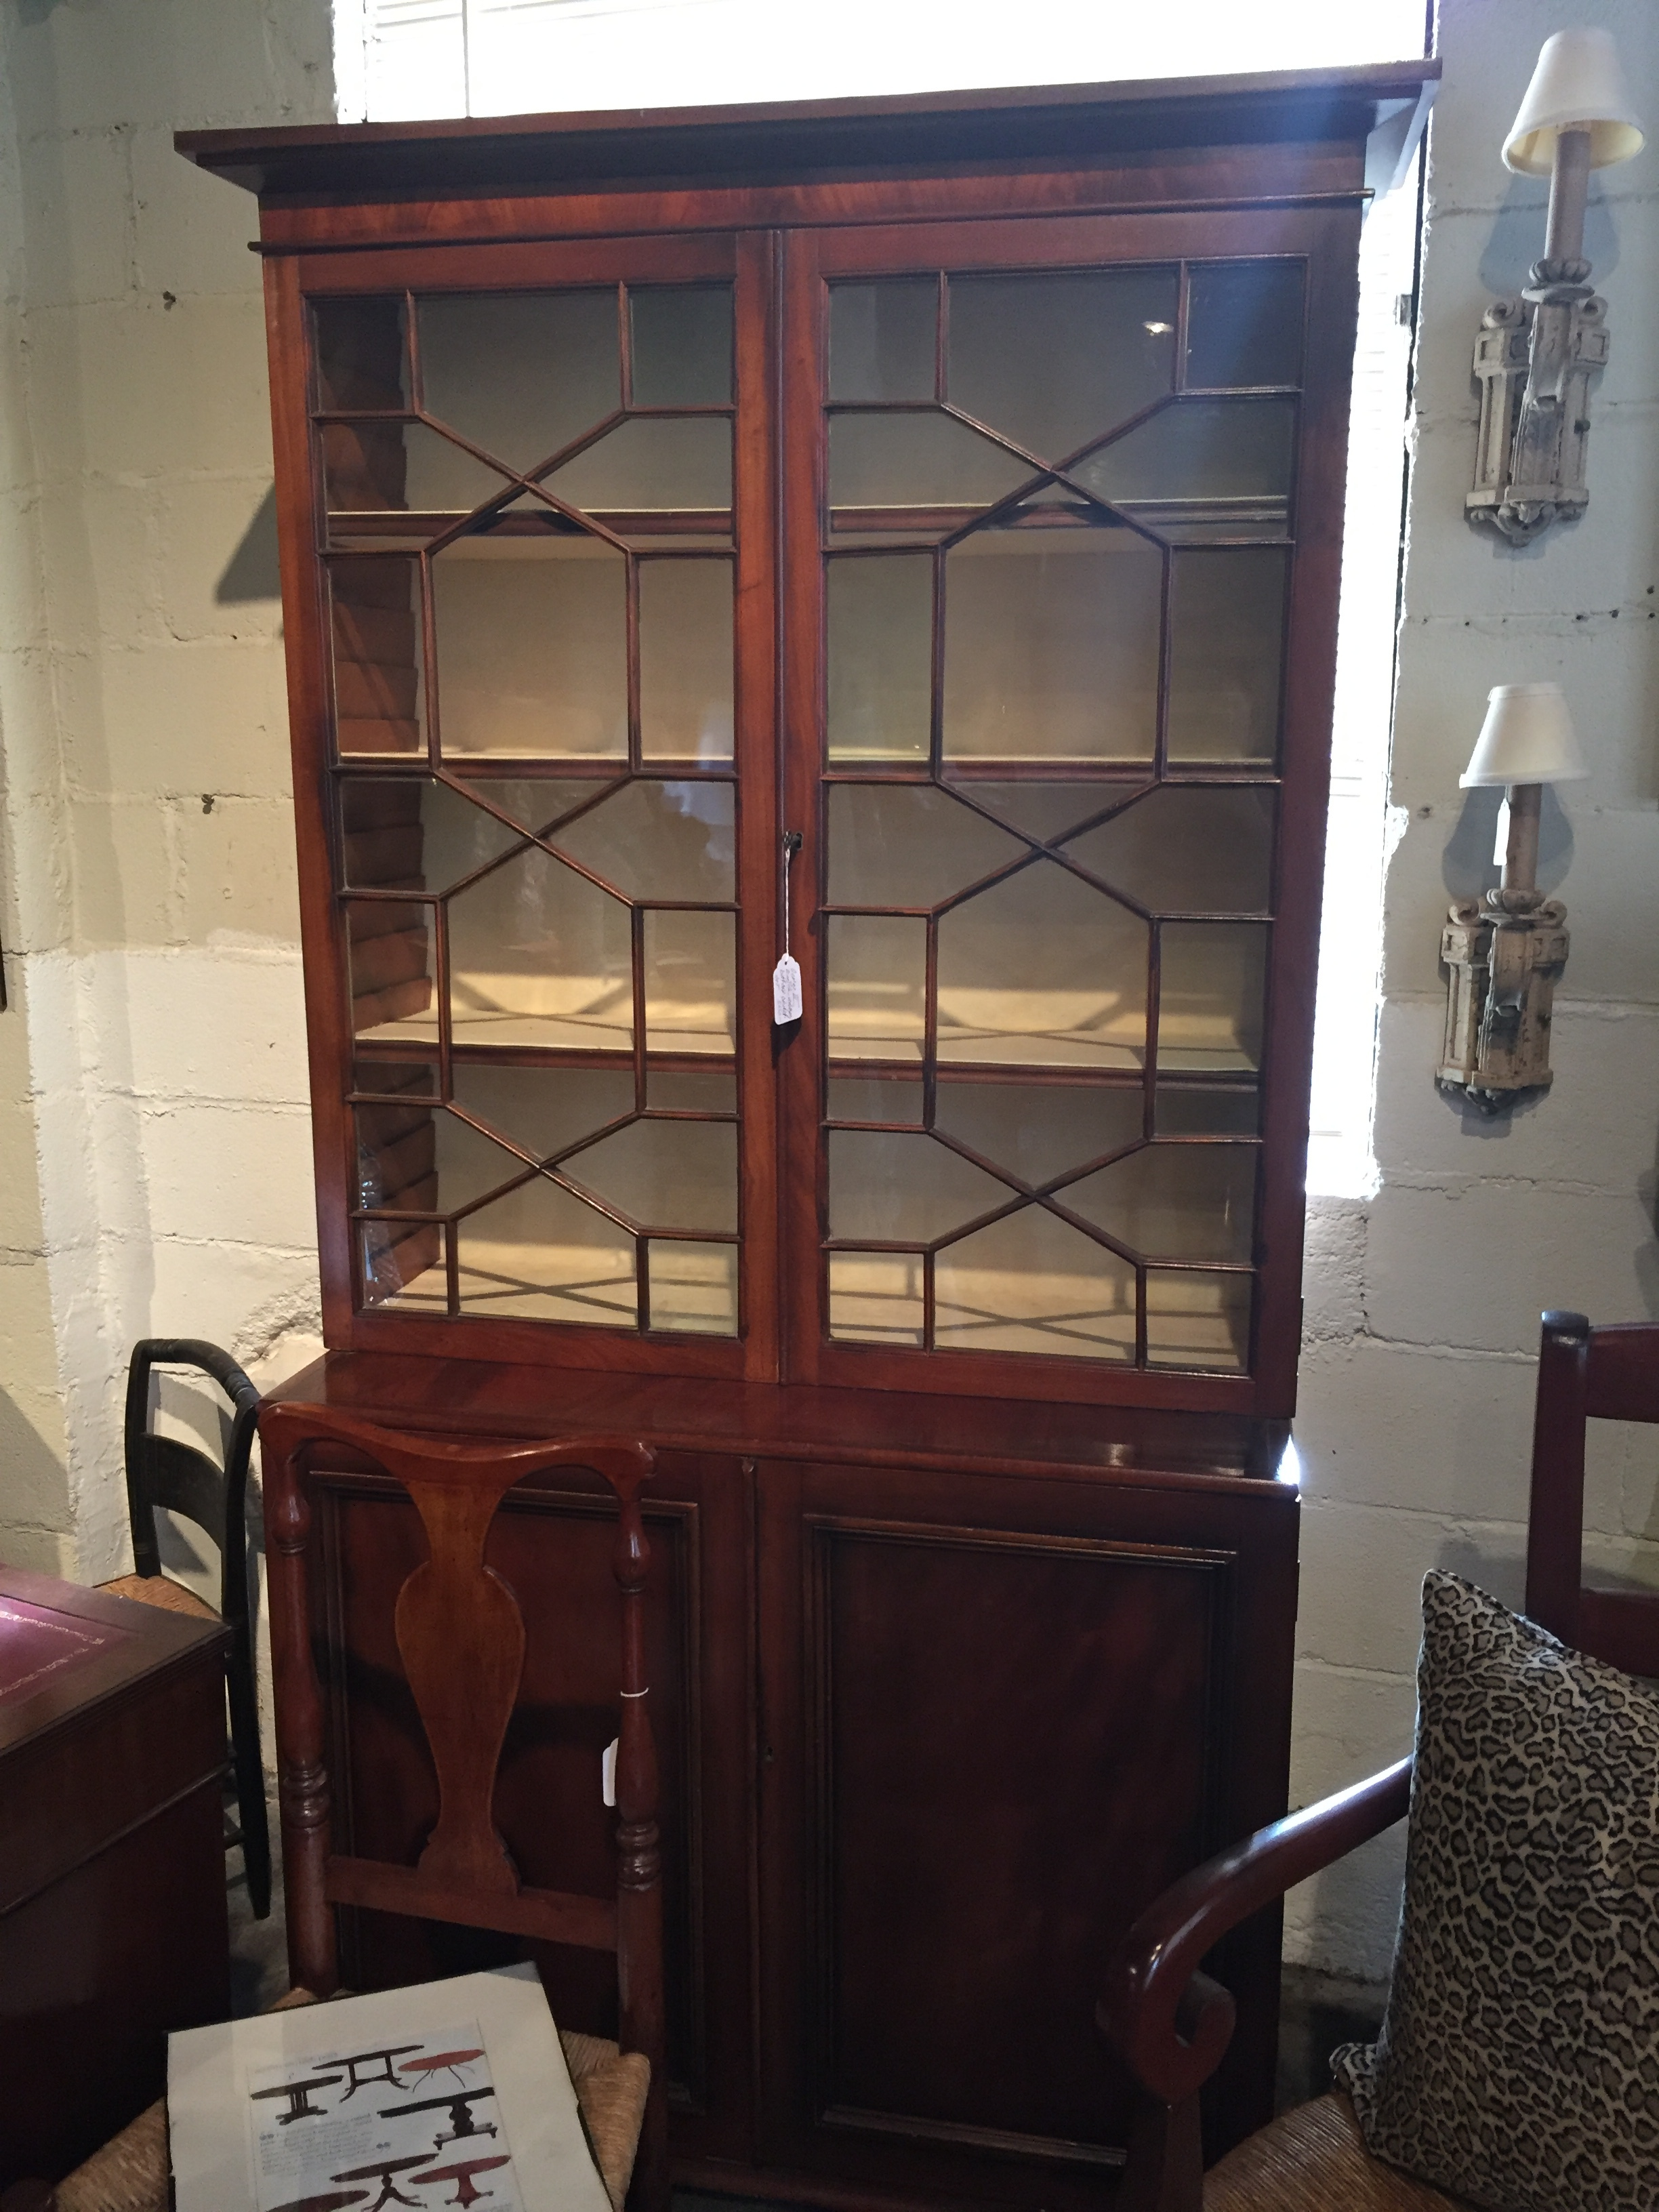 This early English 19th century George II  mahogany bookcase  was stunning in person. And it could go traditional or modern depending on the room.  I love the geometric pattern on the glass doors.